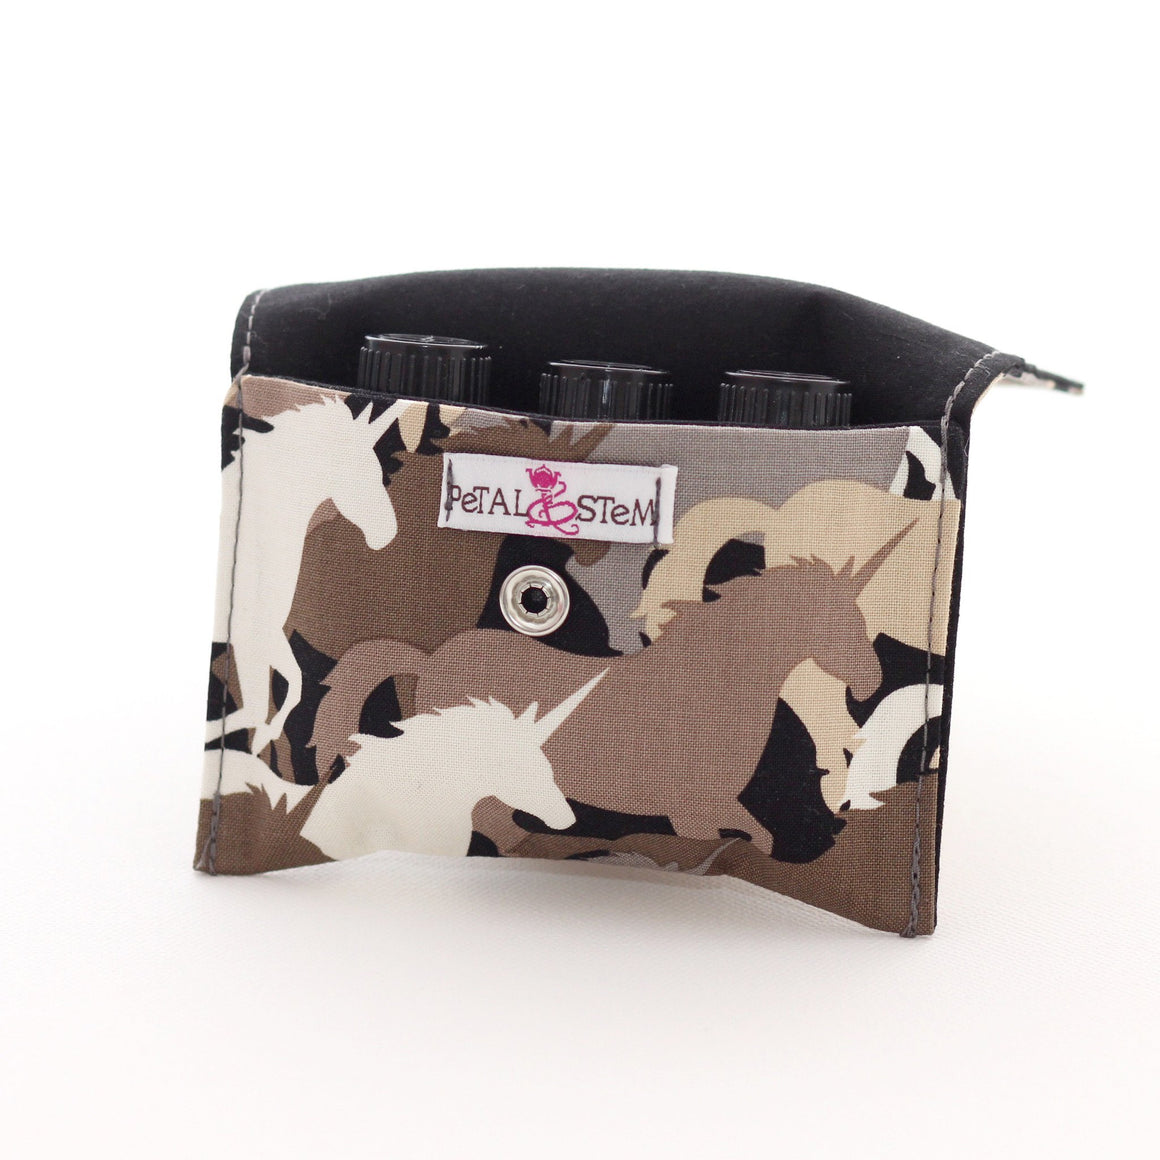 Essential Oil Bag (small) Unicorn Camouflage - Holds your most important oils - Petal and Stem